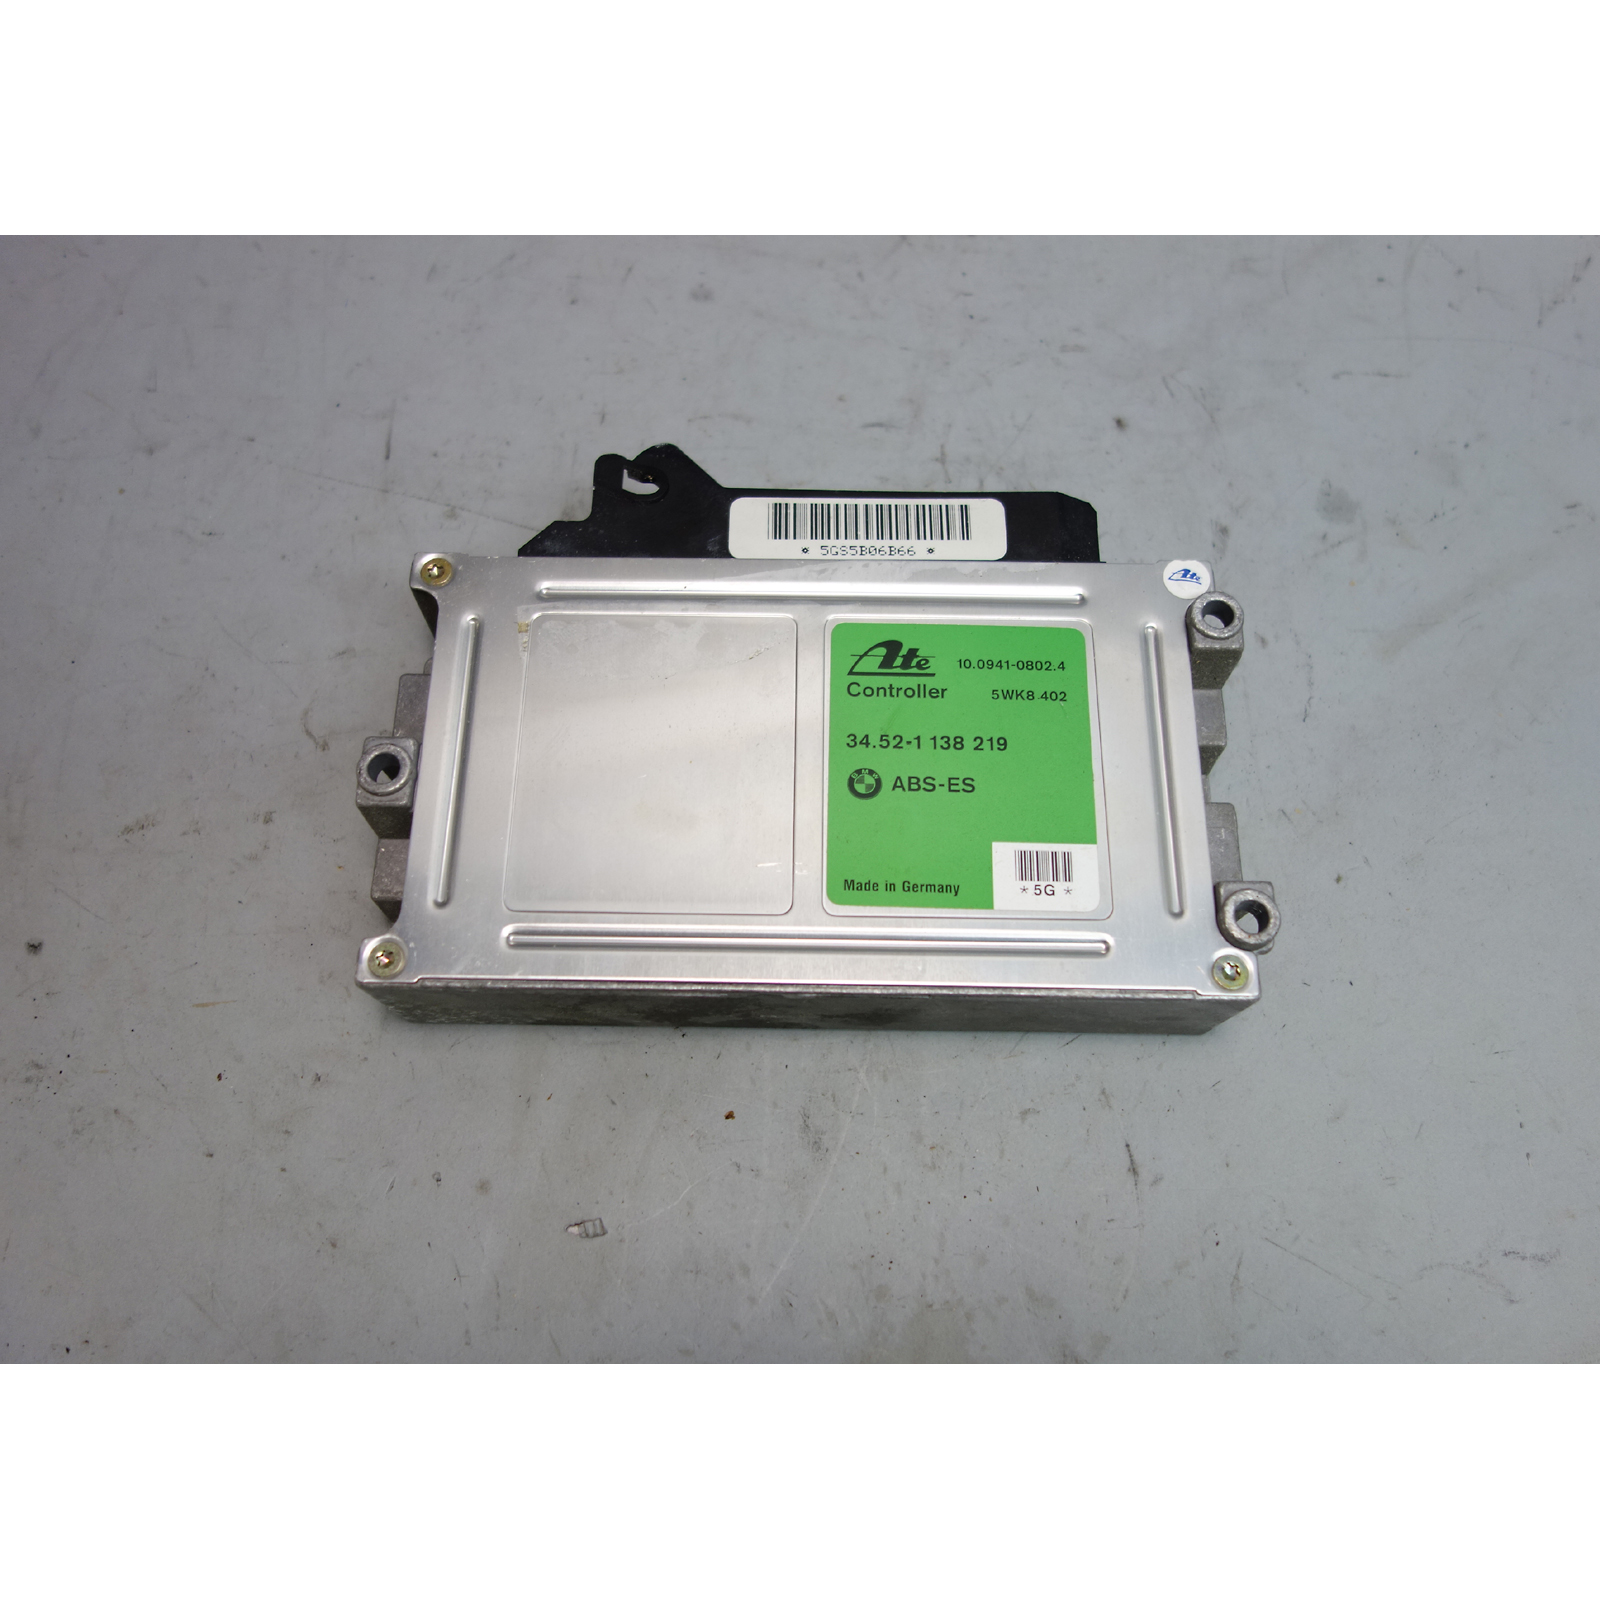 Bmw Abs Module Free Download Pontiac E36 Computer 92 93 325i 325is 84 M3 1138219 Used Oem